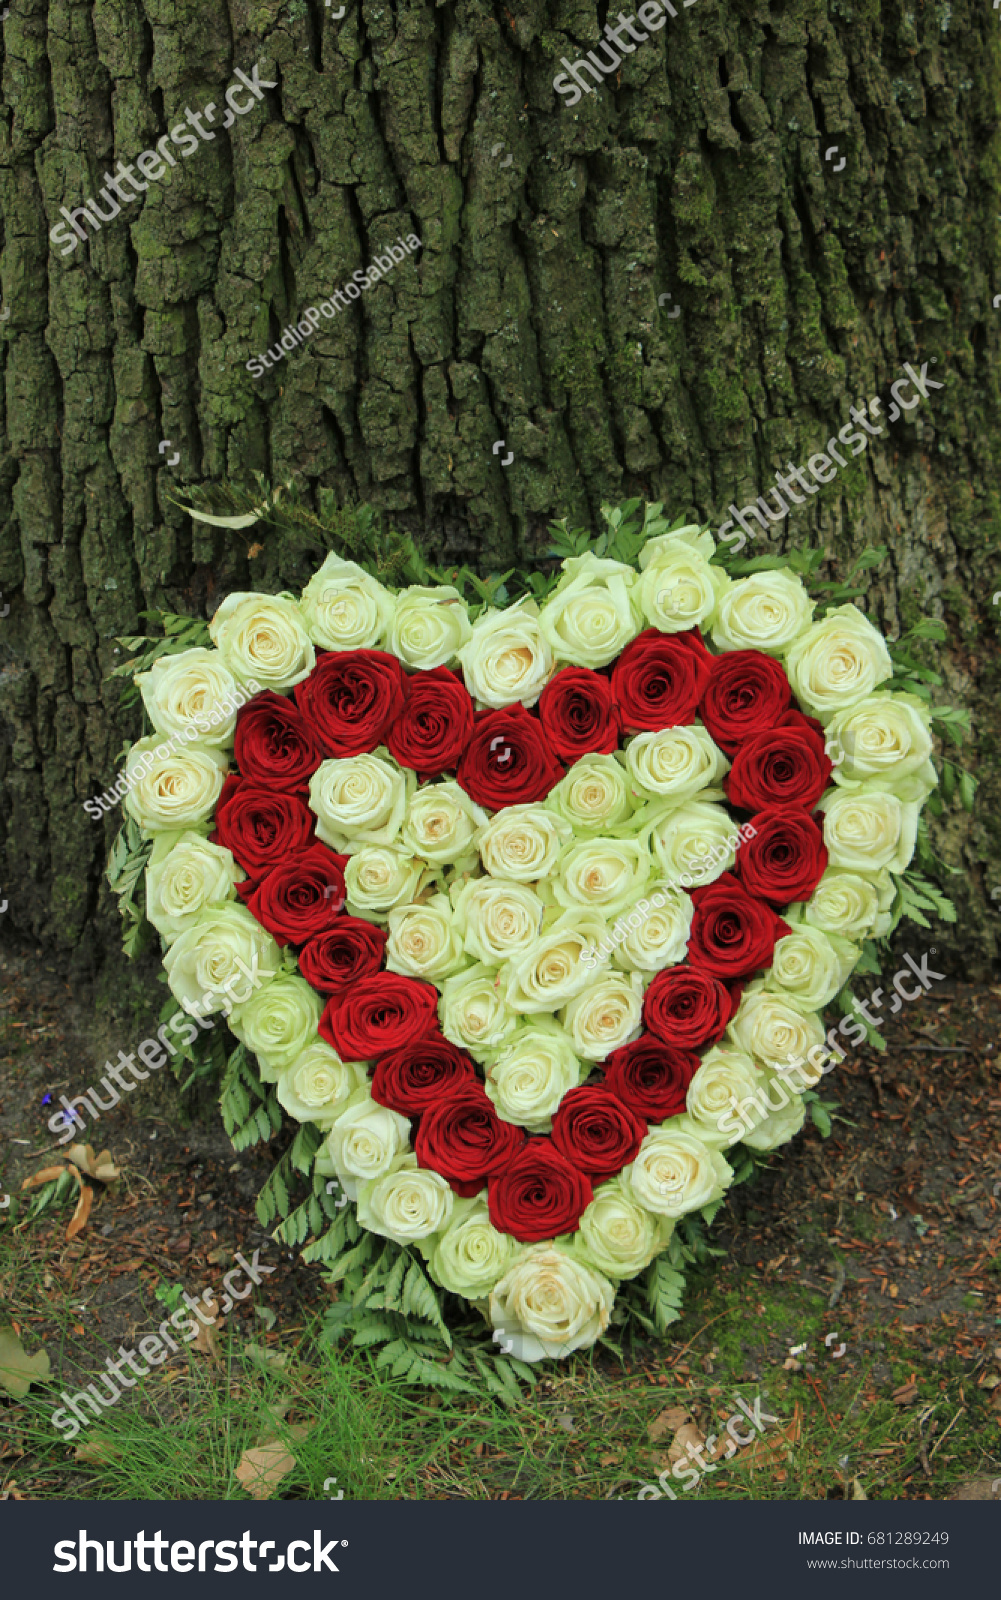 Red white heart shaped sympathy flowers stock photo royalty free red and white heart shaped sympathy flowers or funeral flowers near a tree izmirmasajfo Gallery